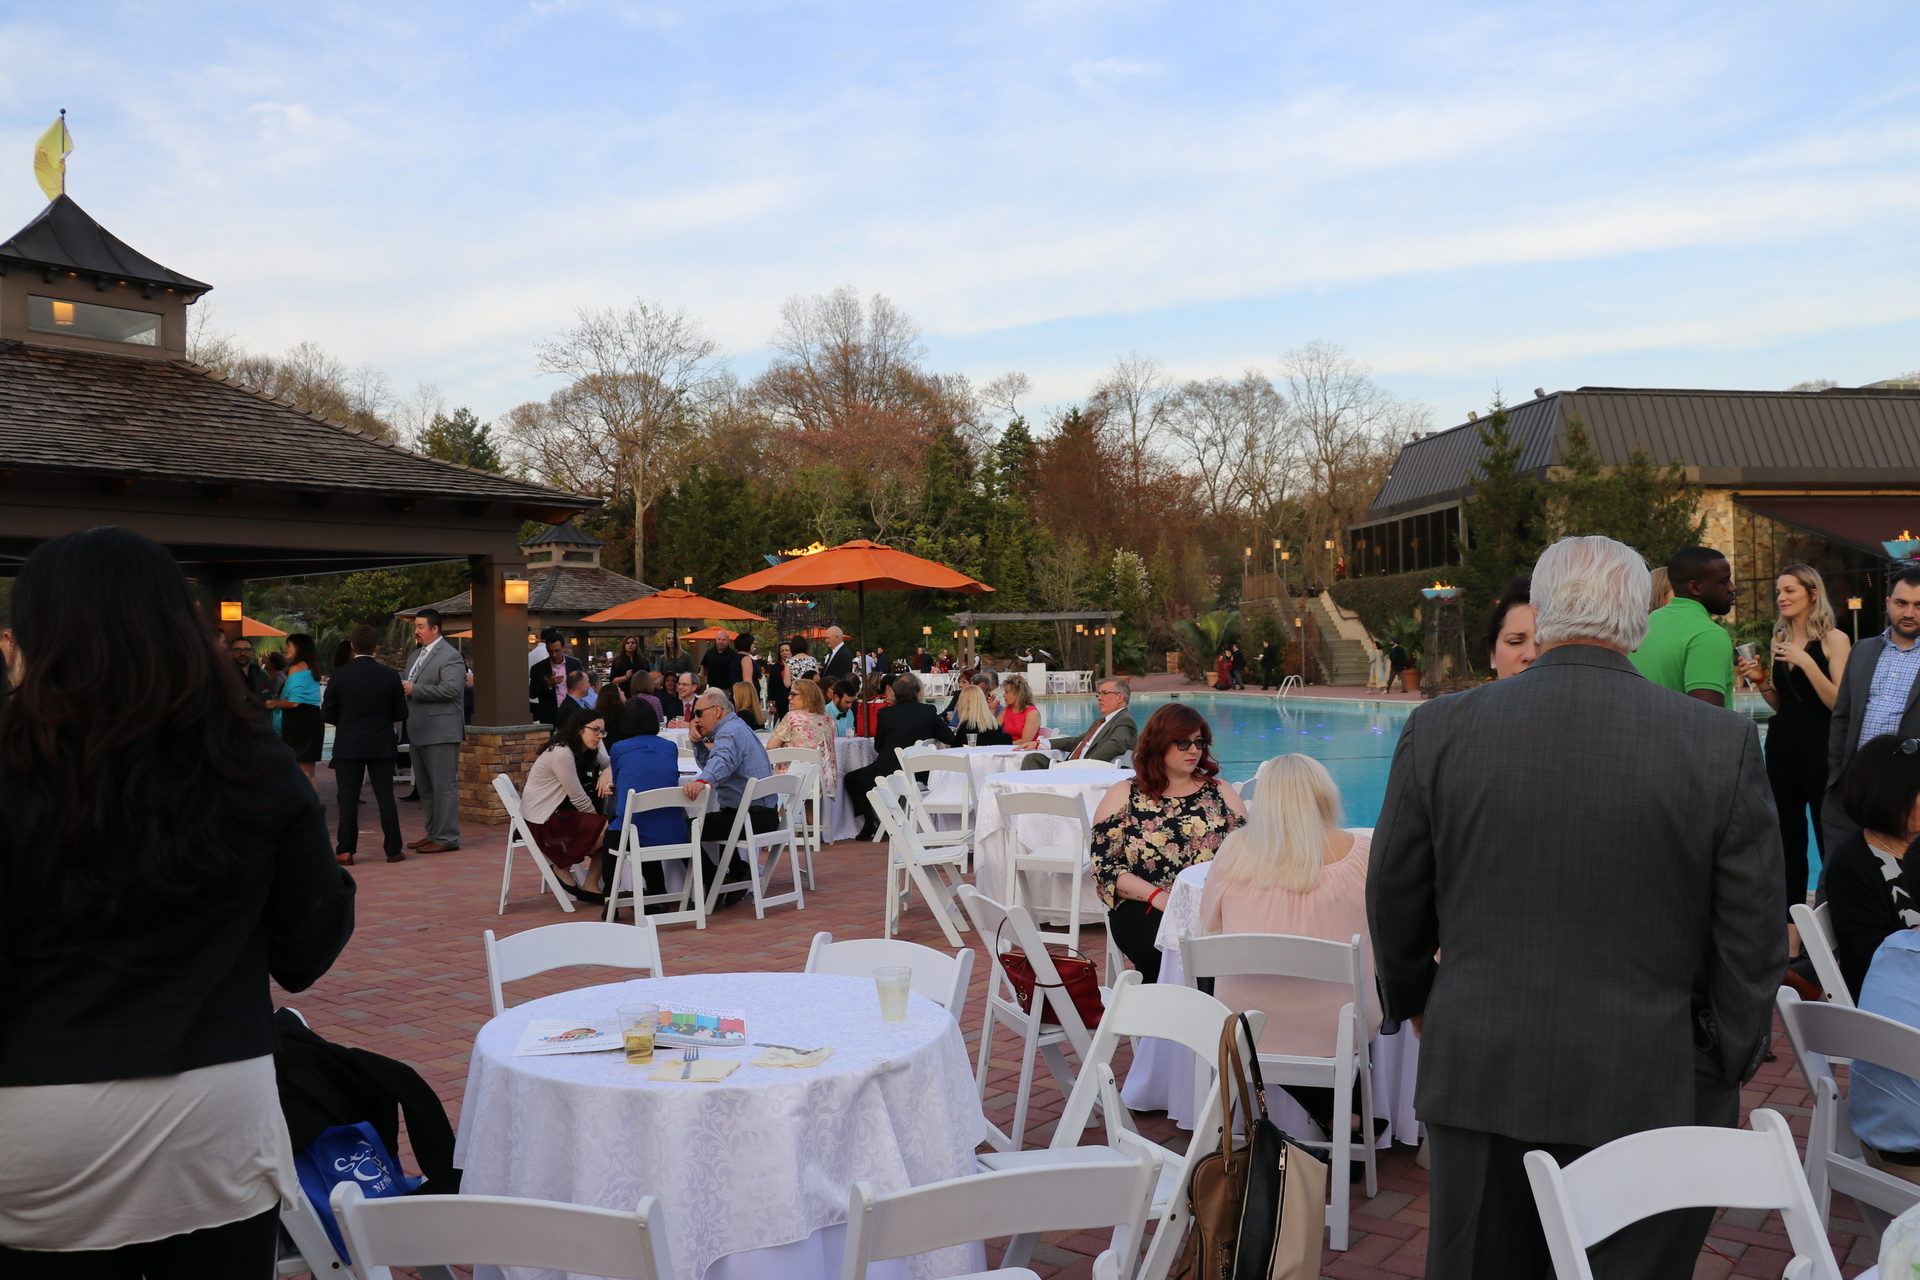 People mingling during the event at Crest Hollow Country Club.